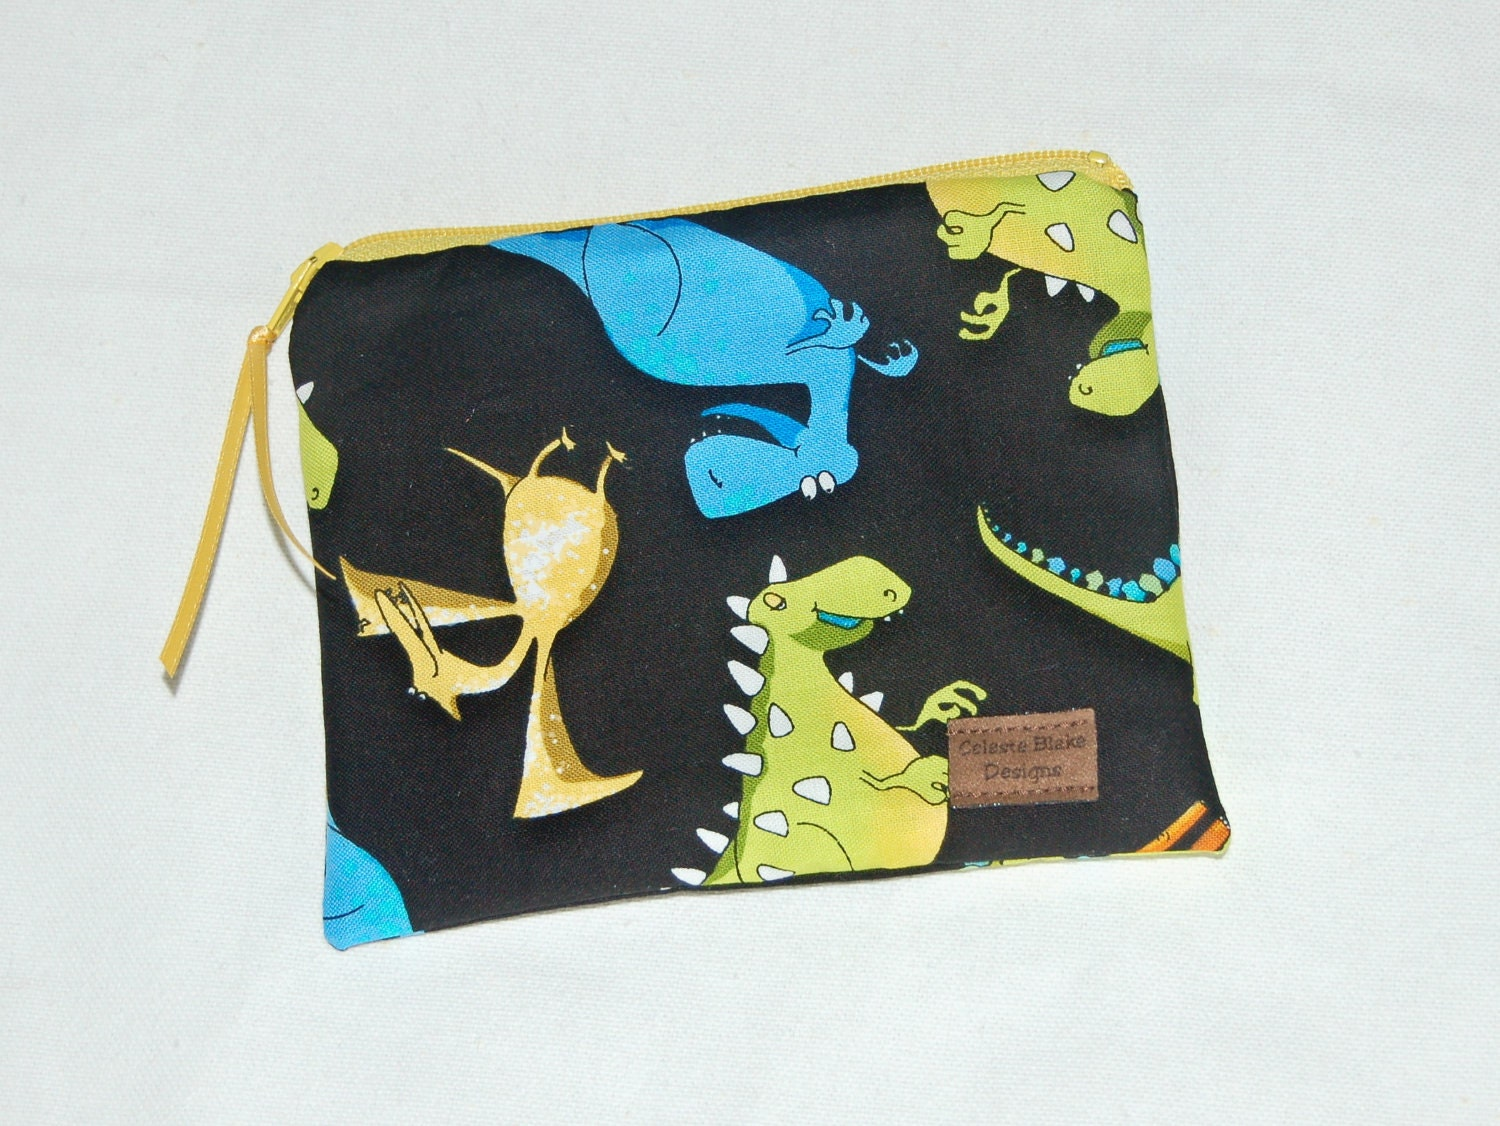 Celeste Blake Designs snack bag